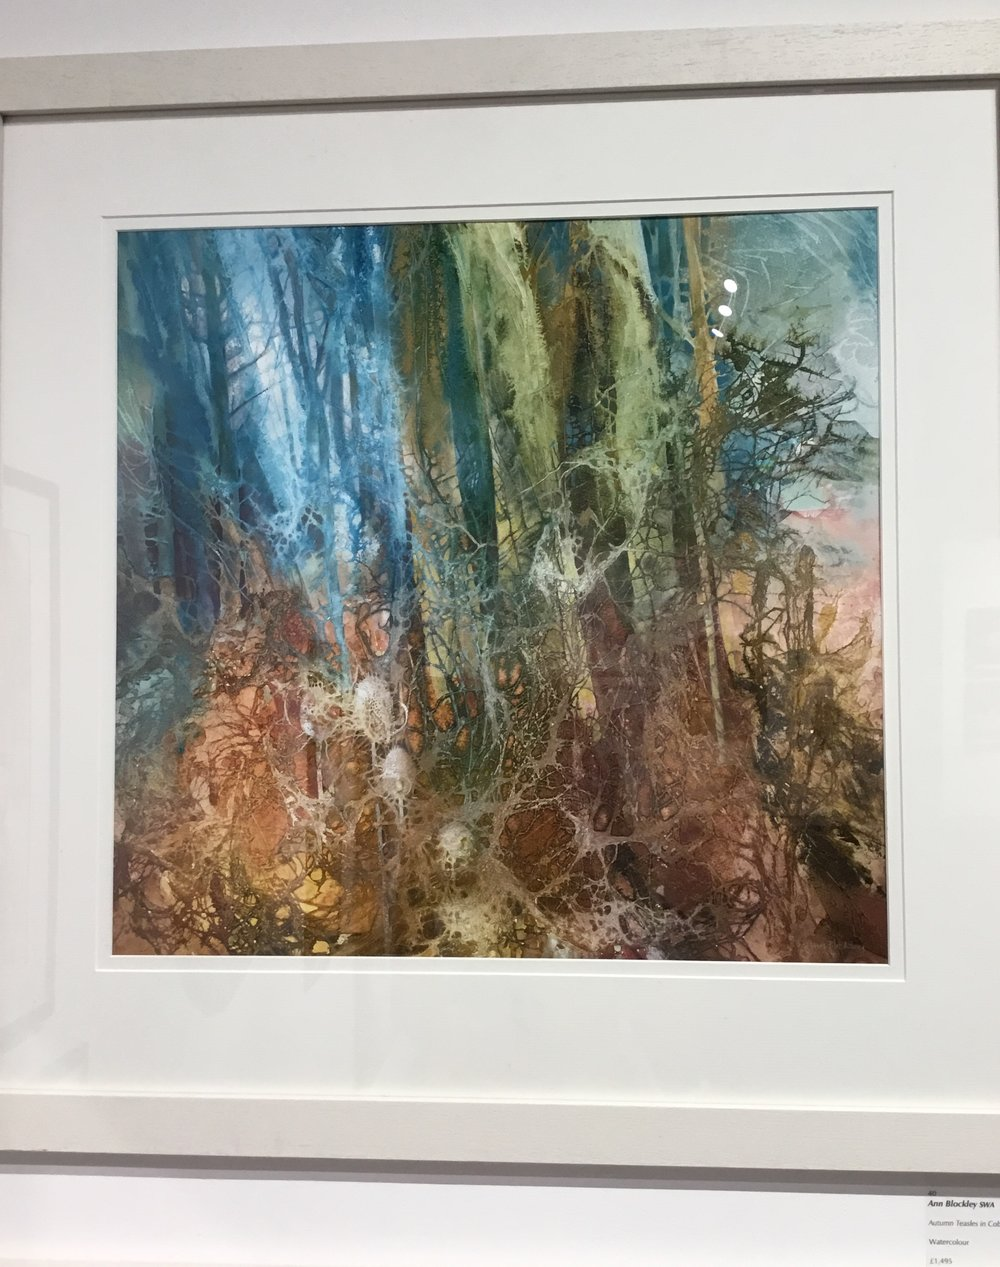 Ann Blockley, Autumn Teasles in Cobweb Wood. That work doesn't even need a comment, it is just masterful and speaks for itself